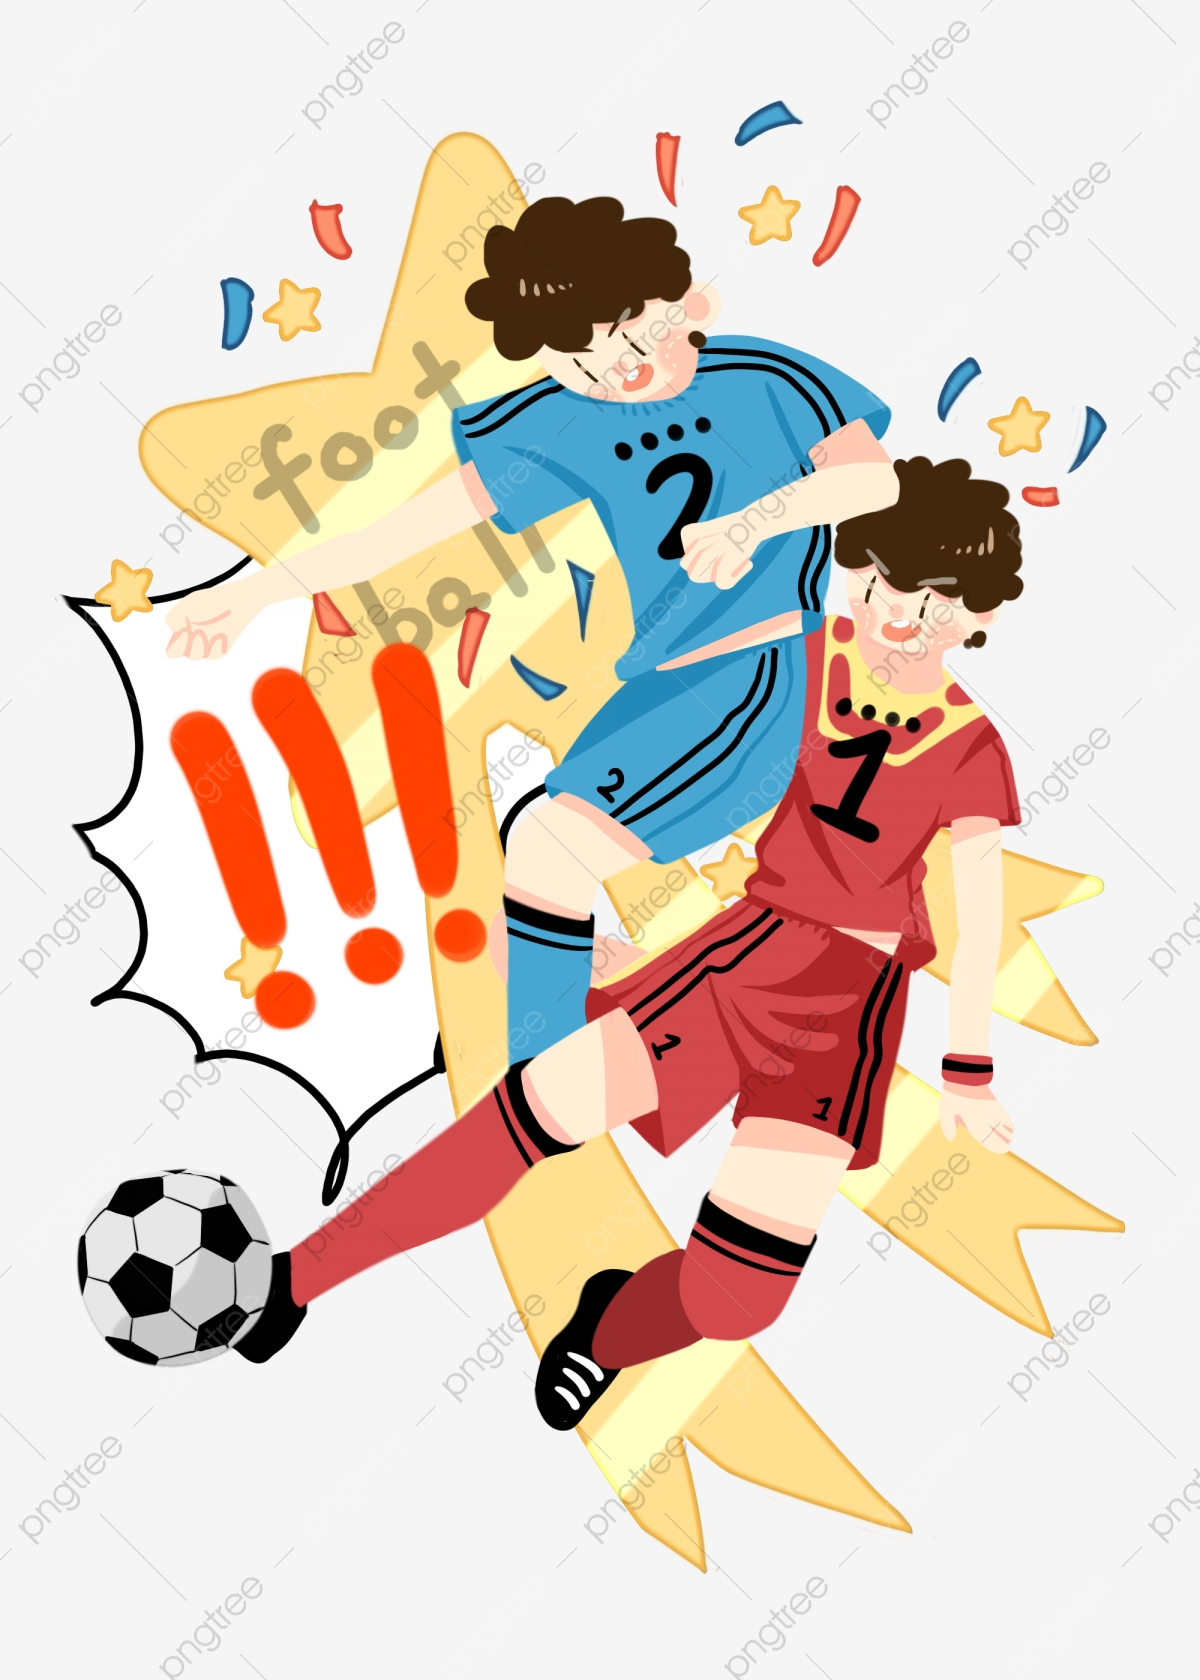 Football Character Cartoon Illustration Football Sports Competition Png Transparent Clipart Image And Psd File For Free Download